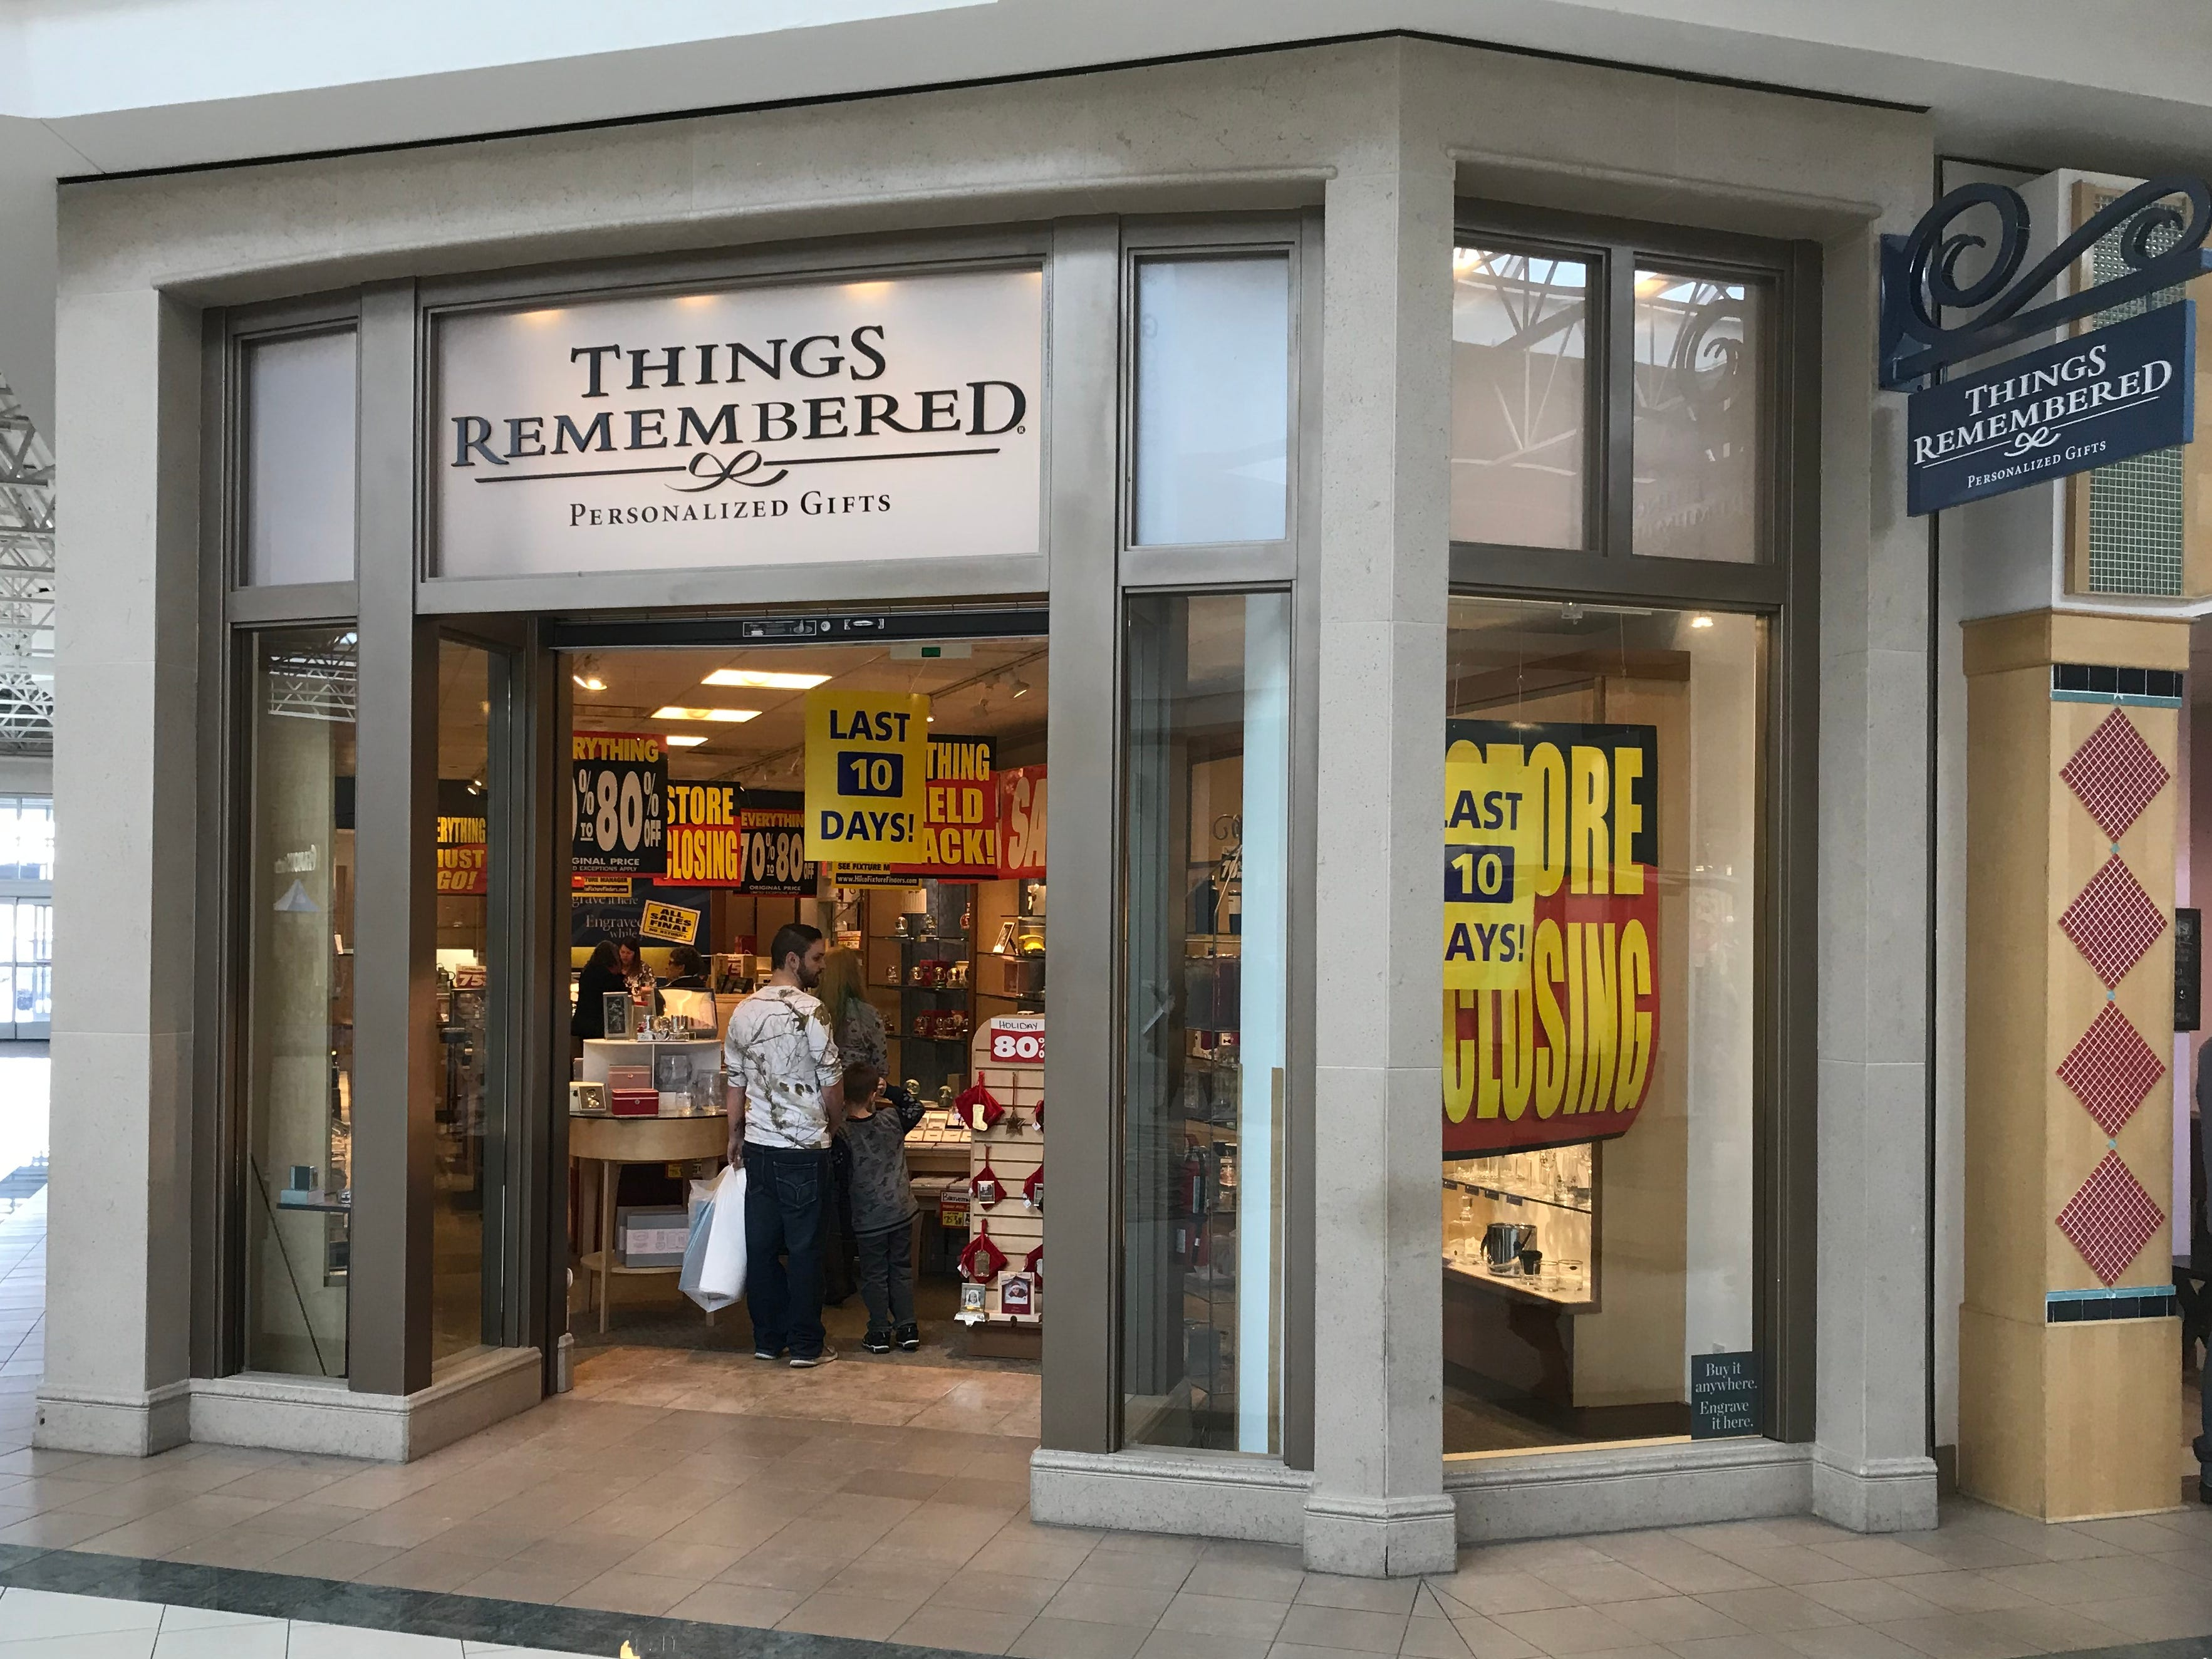 The Things Remembered store in Bay Park Square will close in February. The company filed for bankruptcy Feb. 5 and was sold the following day to Enesco LLC, which will keep some, but not all, stores open.